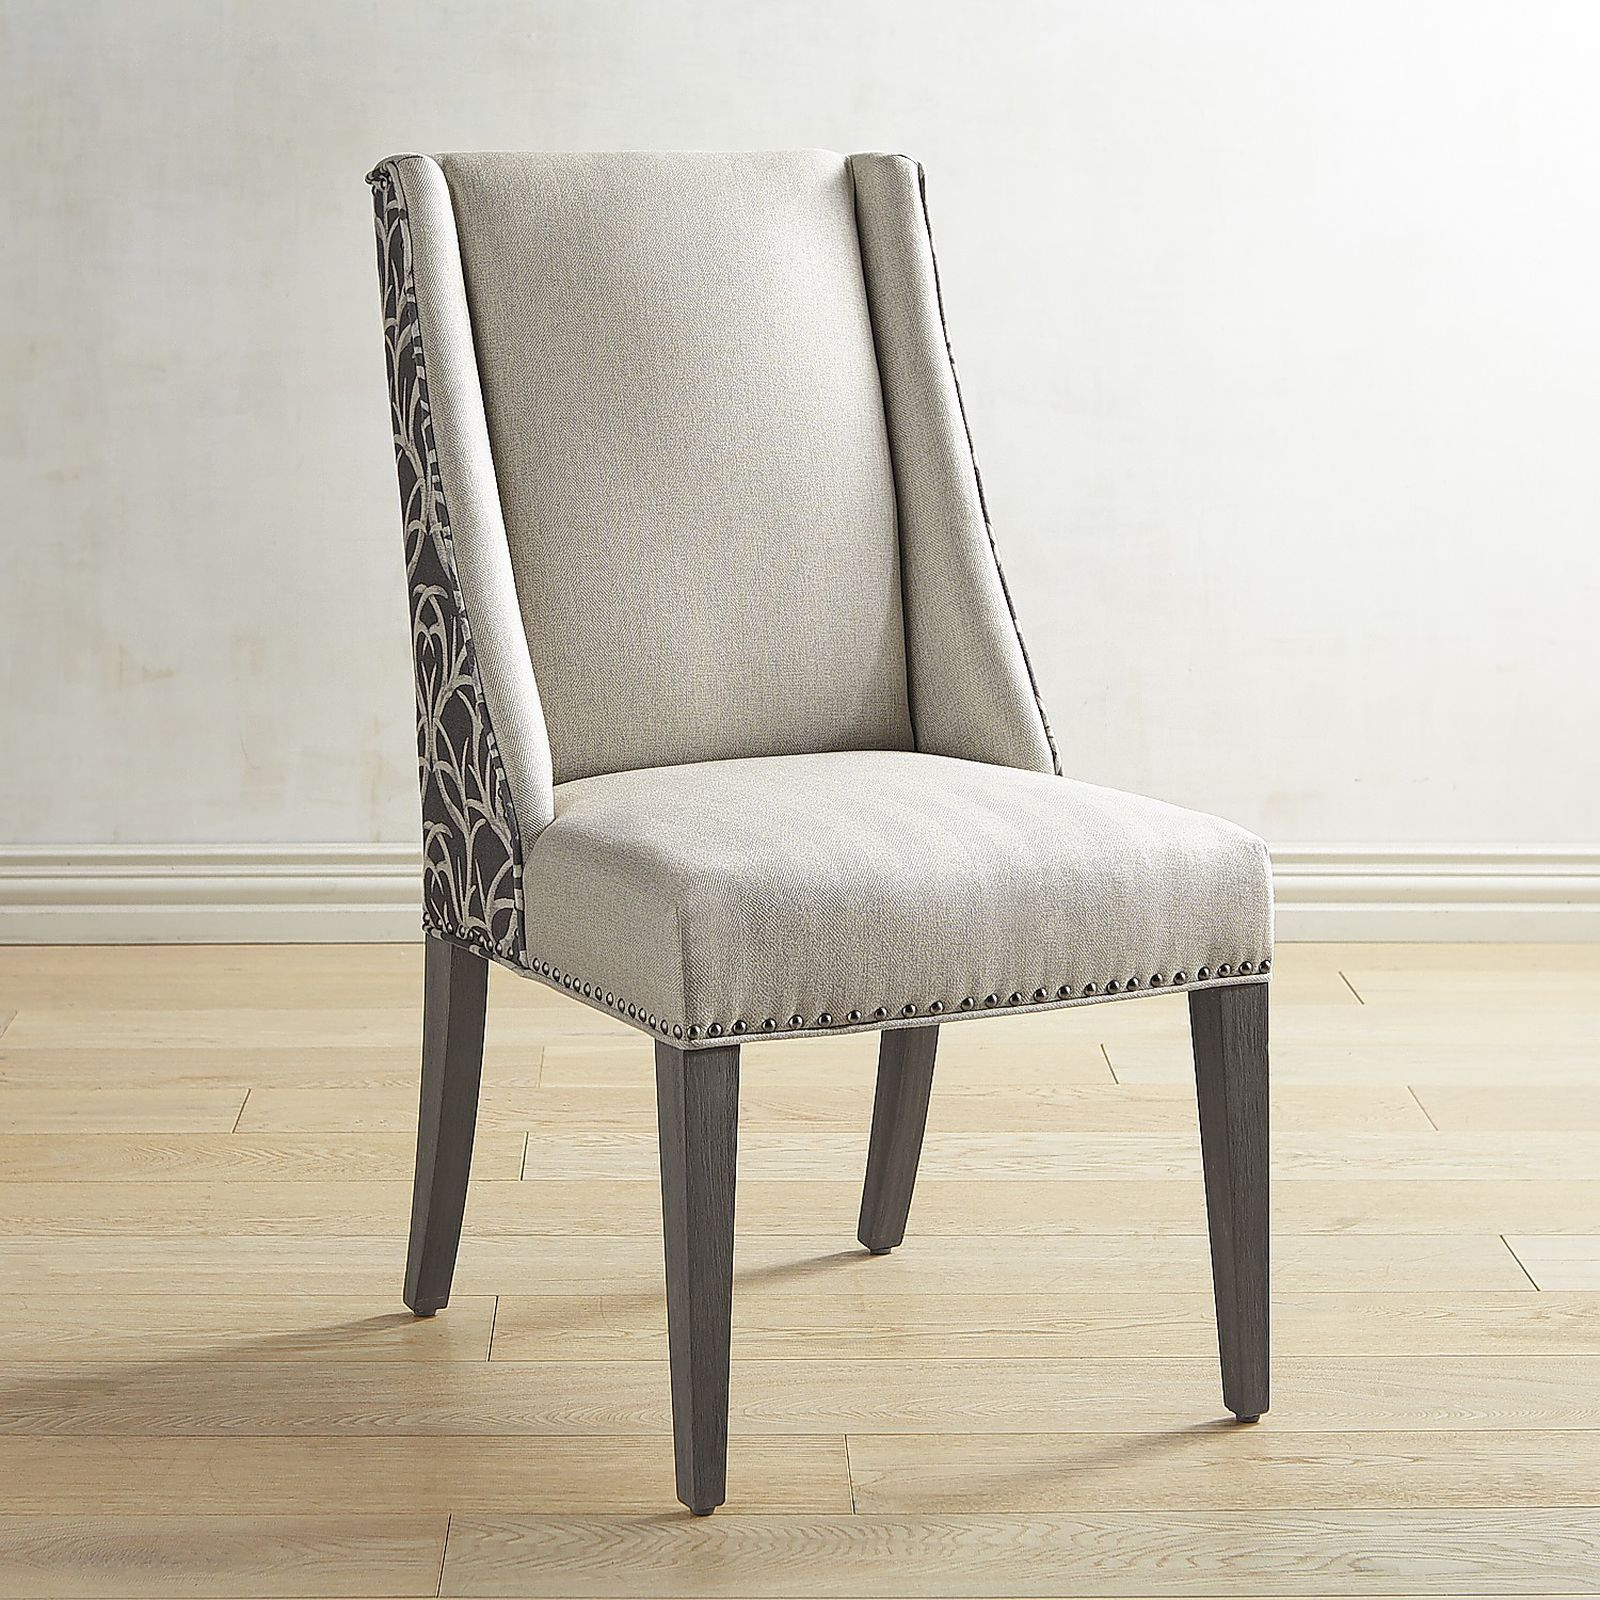 Owen Extra Points Antler Flax Dining Chair Pier 1 Imports